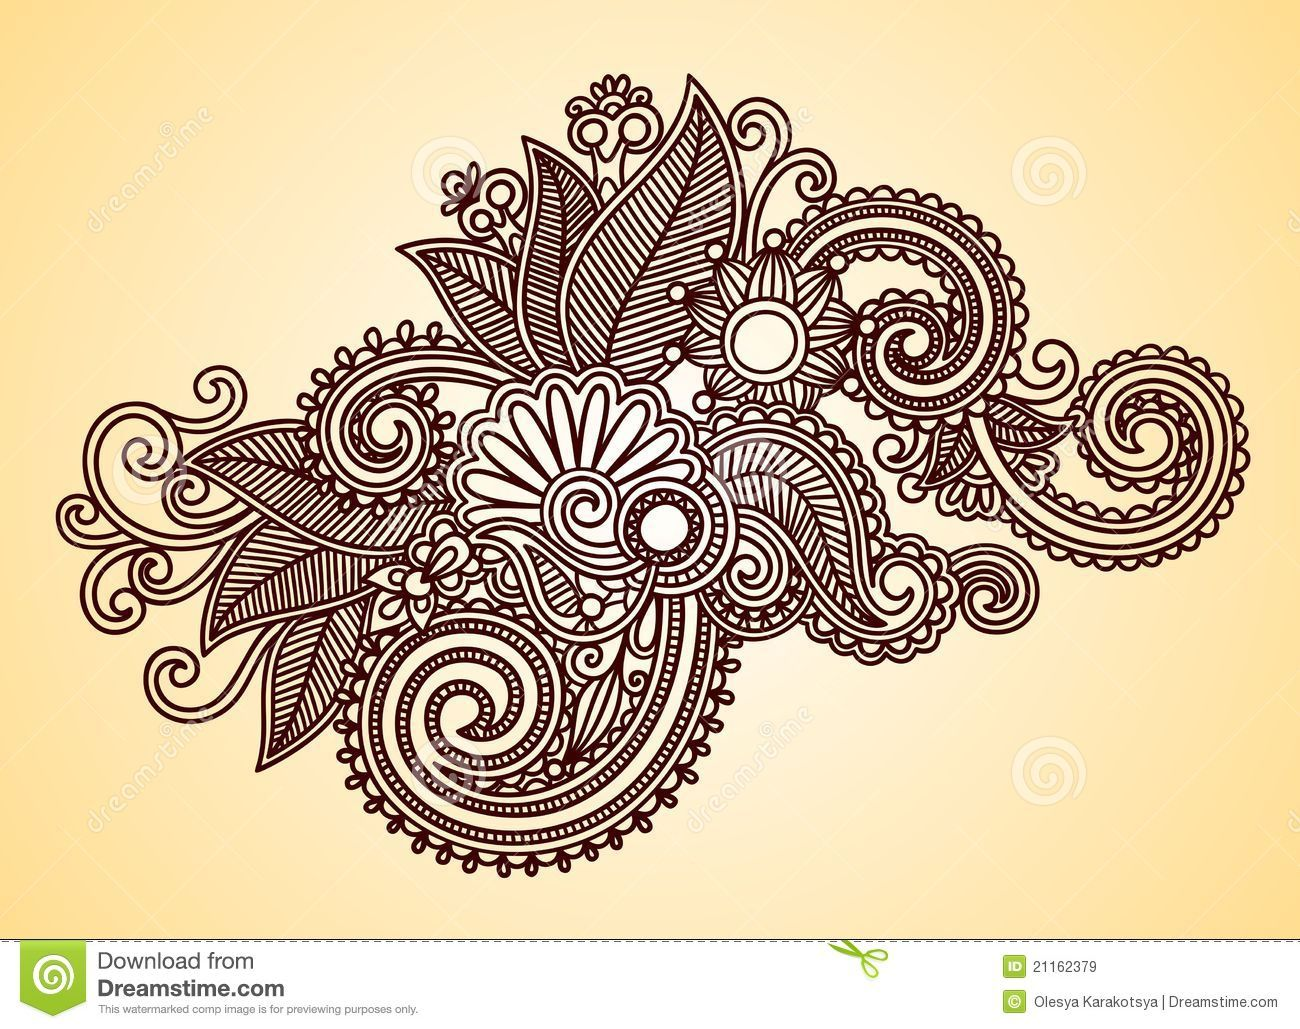 Henna Design Line Art : Images for gt henna design drawing mehndi designs